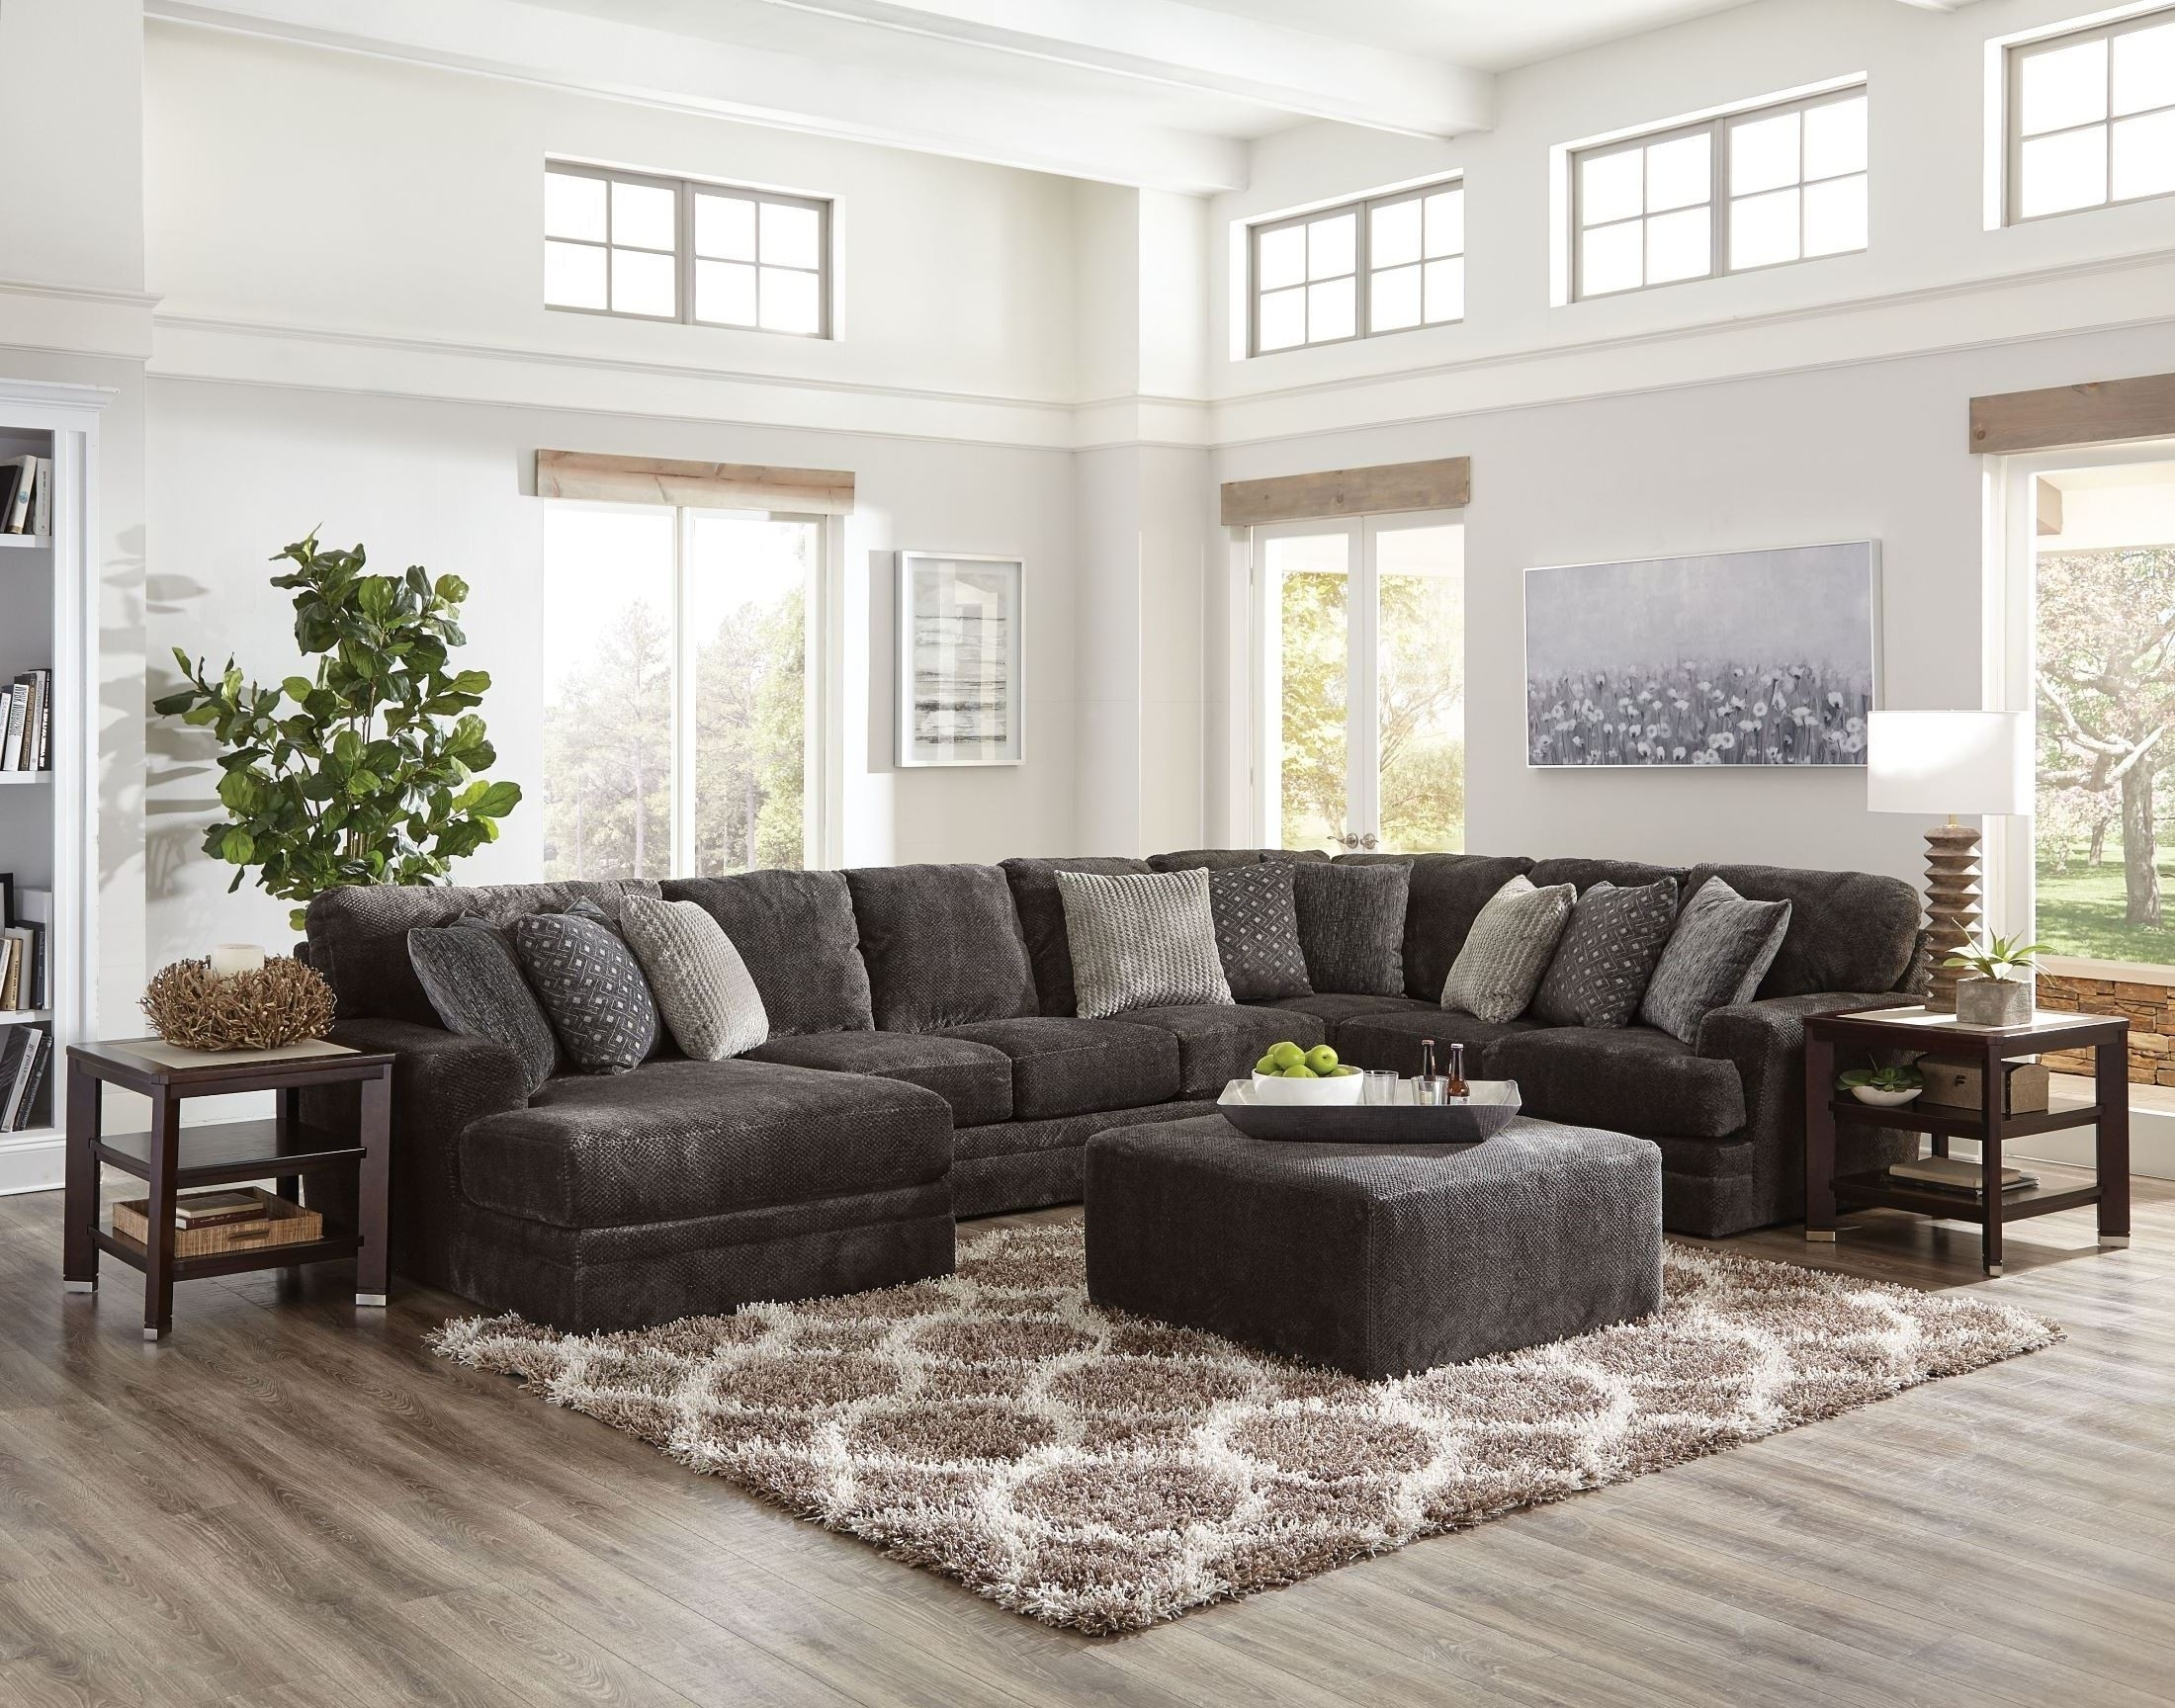 Mammoth Smoke Laf Chaise Sectional From Jackson | Coleman Furniture Inside Avery 2 Piece Sectionals With Raf Armless Chaise (View 12 of 25)